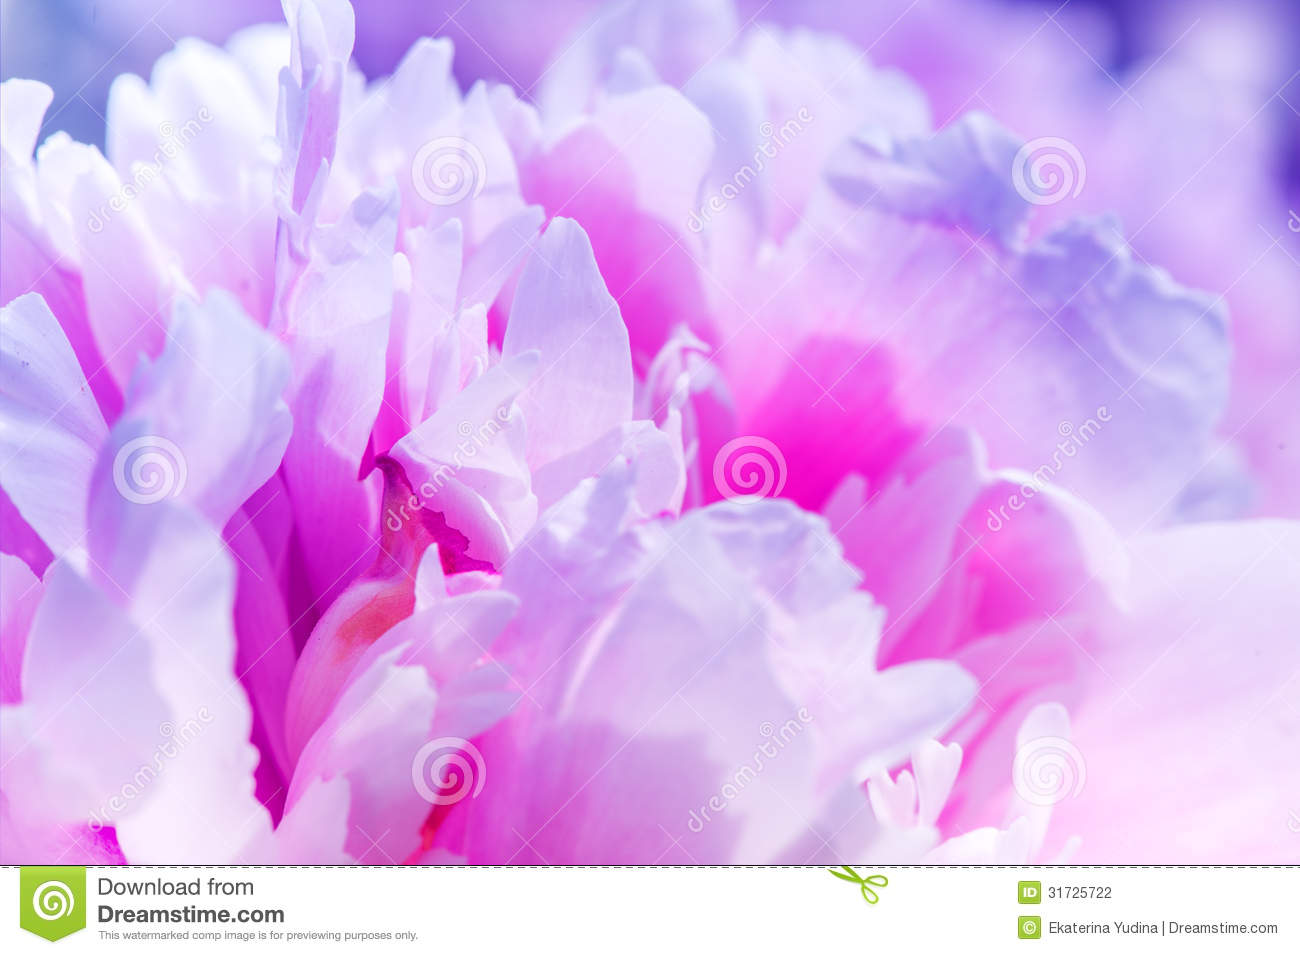 Defocus Beautiful Pink Flowers Abstract Design Stock Photo Image